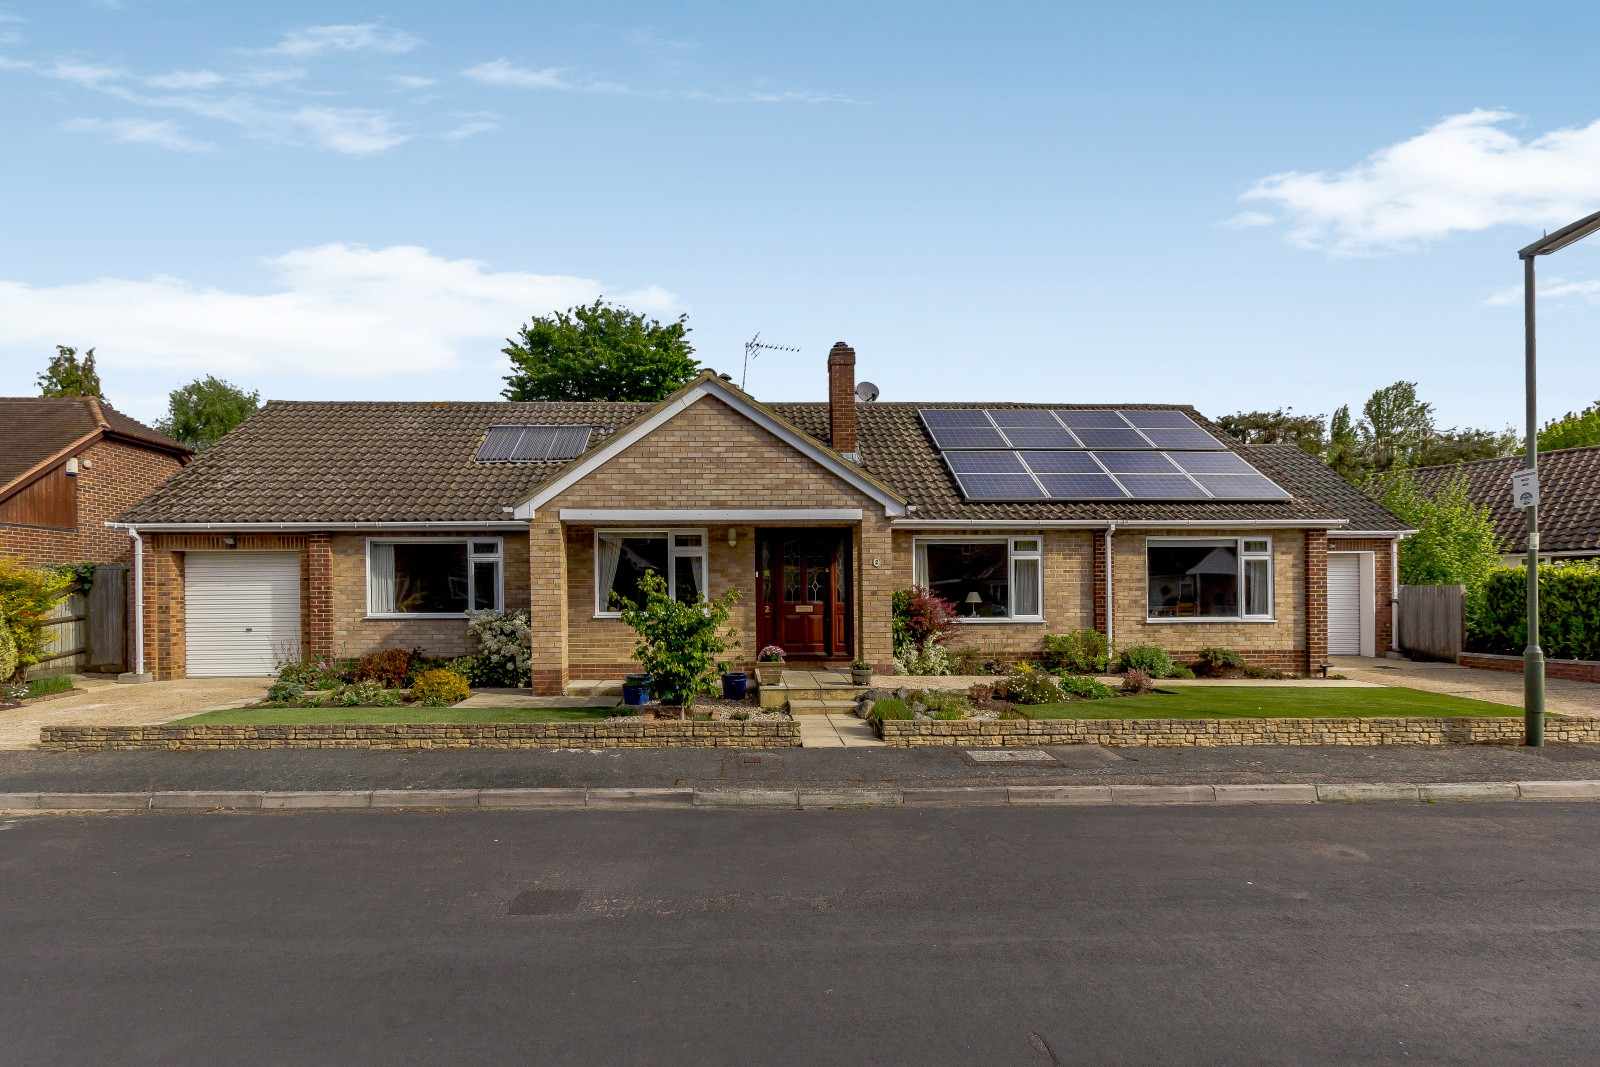 Bungalow in the UK with solar panels